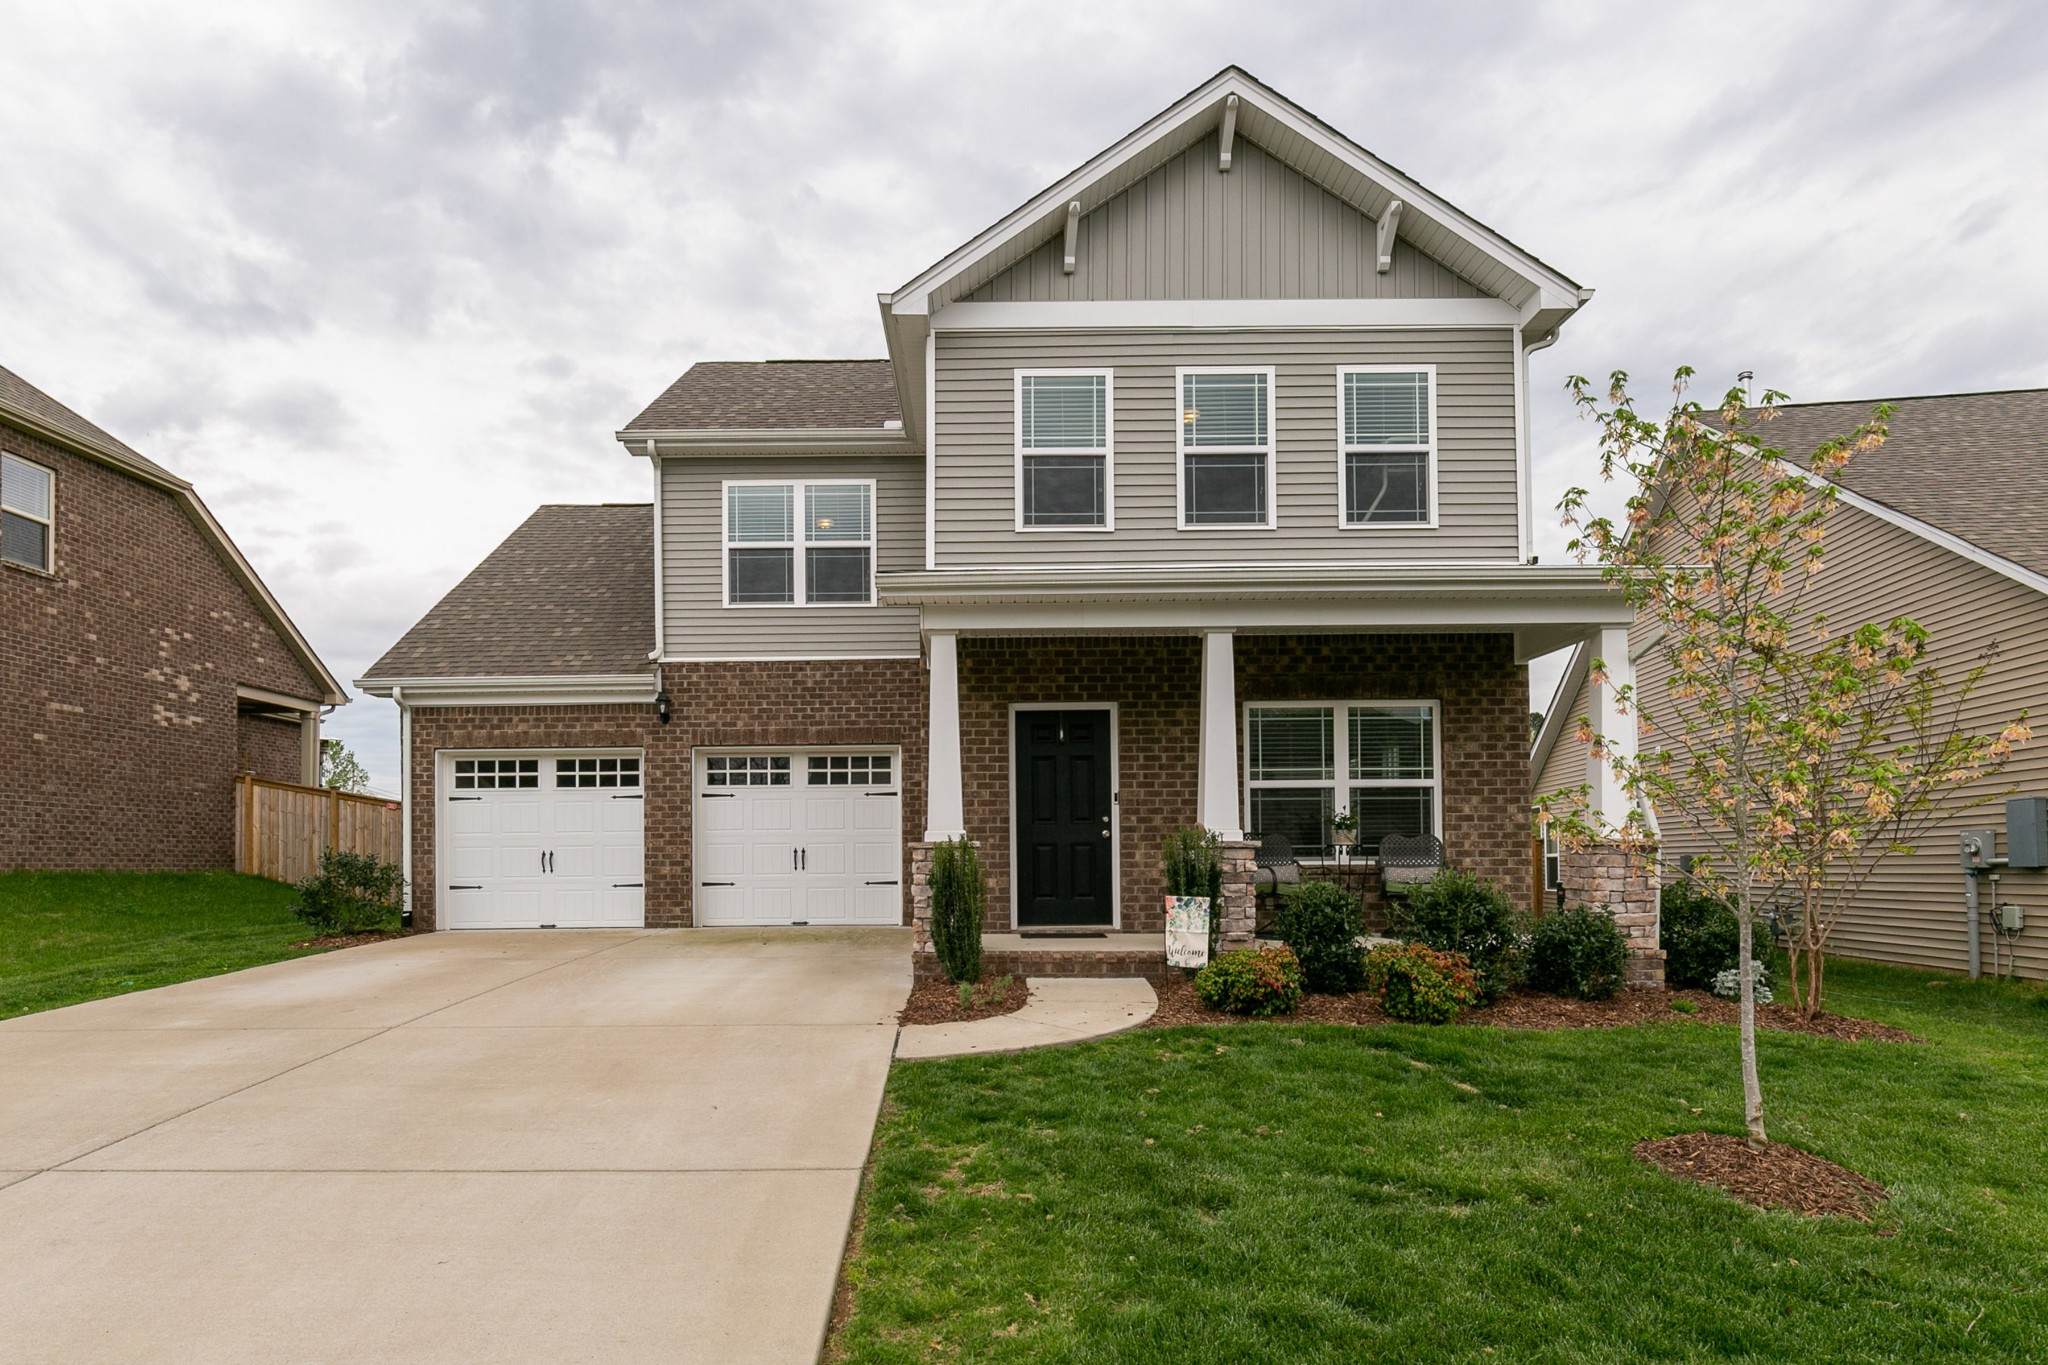 1351 Coates Ln Property Photo - Gallatin, TN real estate listing